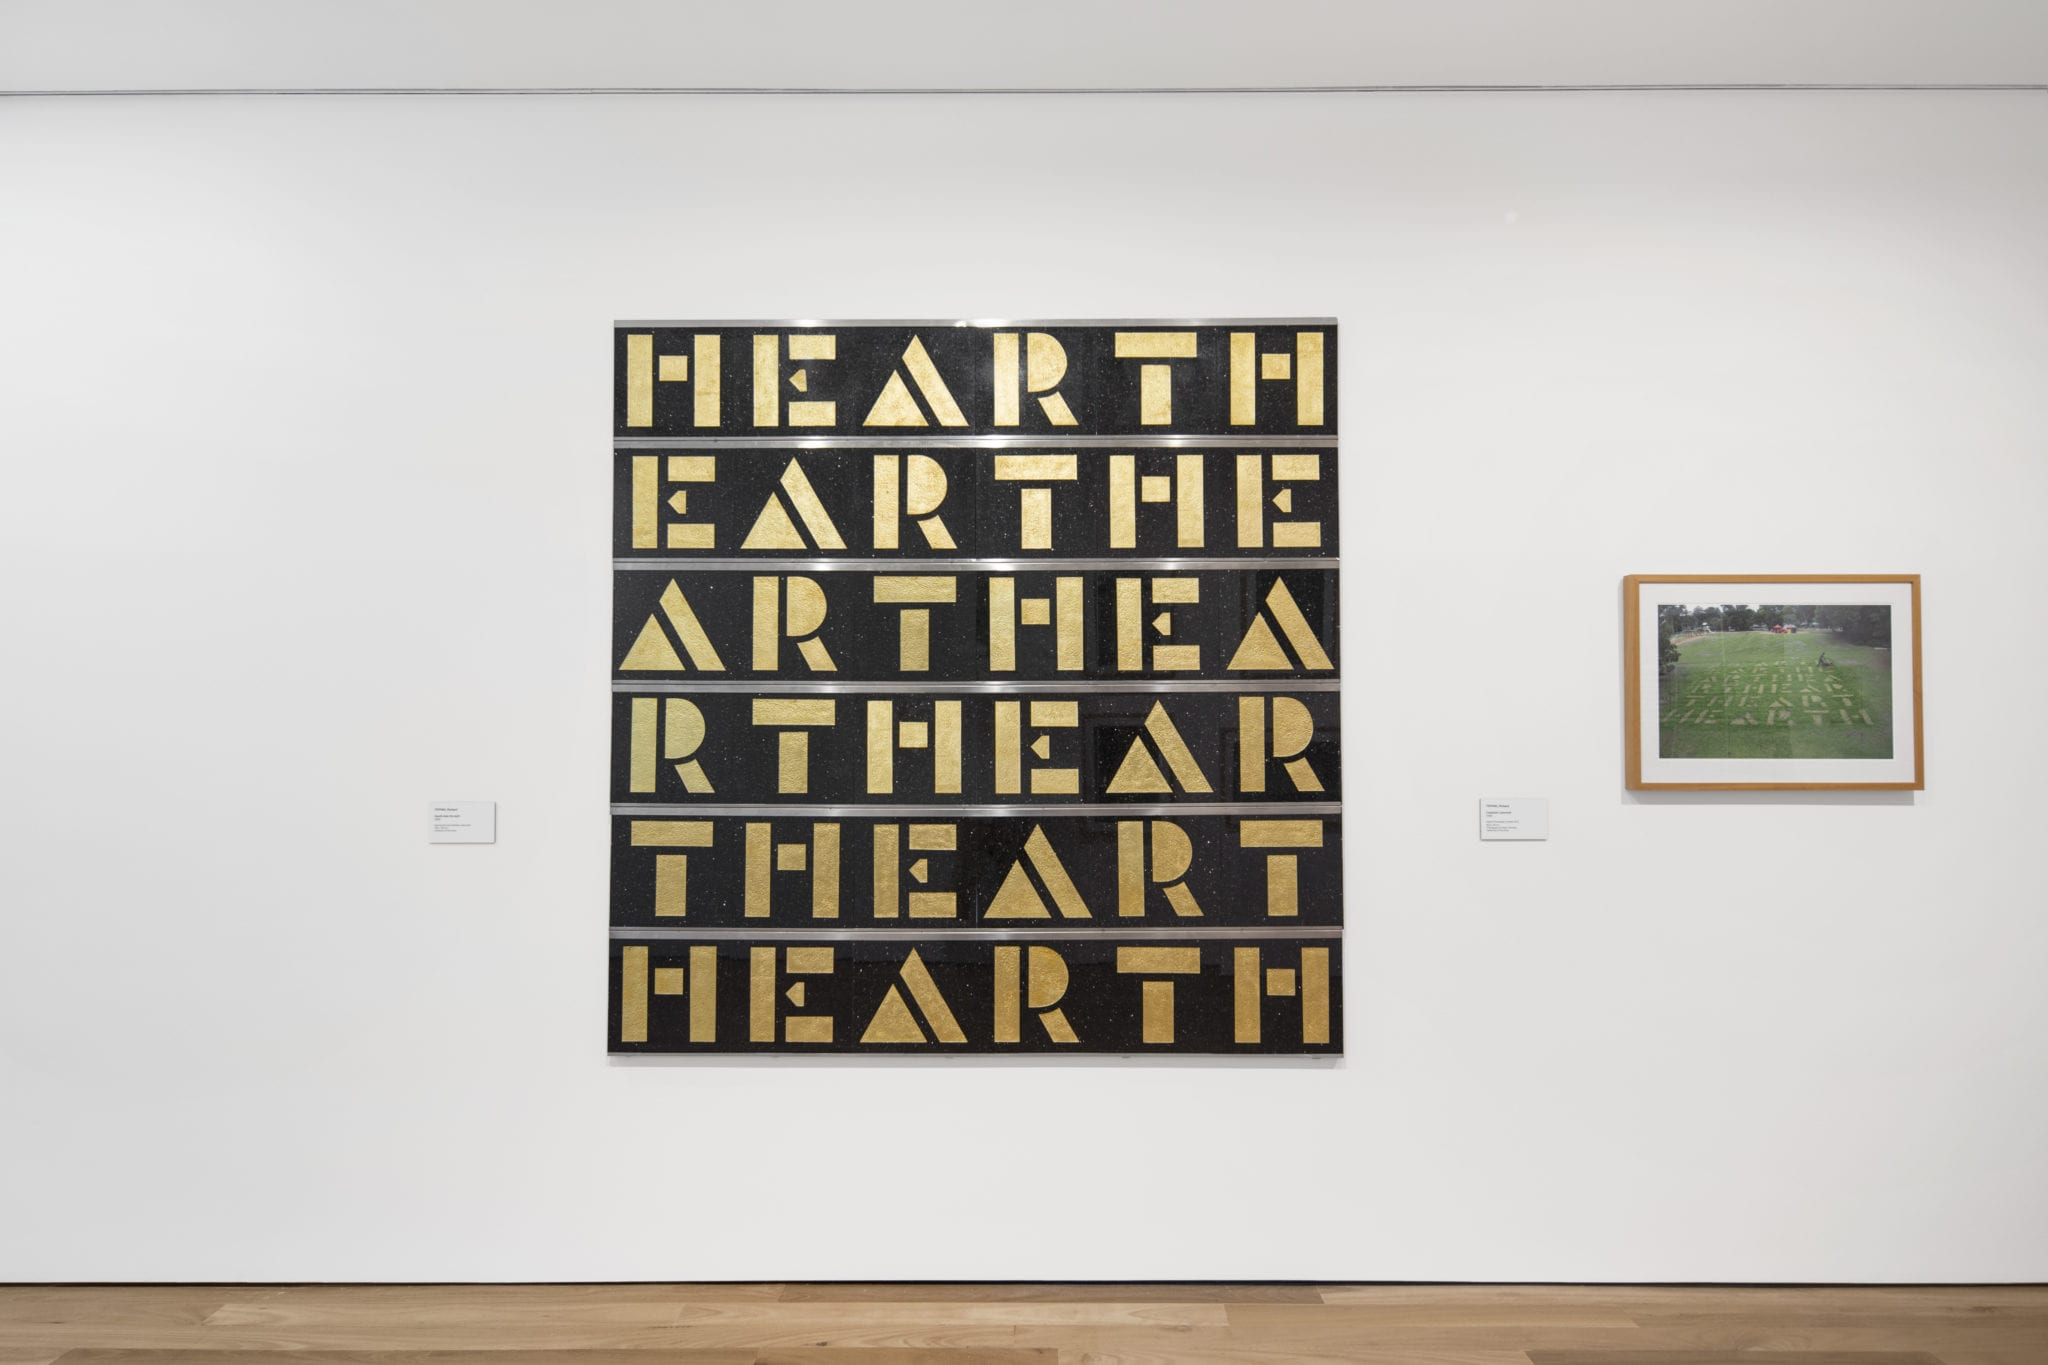 Richard Tipping, Hearth-hear the earth 2008 and Frankston Lawnwork 2008 (Richard Tipping: Art Word: Signs, Drawings, Typographs) 21 July to 21 October 2018, Latrobe Regional Gallery, Morwell). Photograph by Benjamin Hosking, 2018.